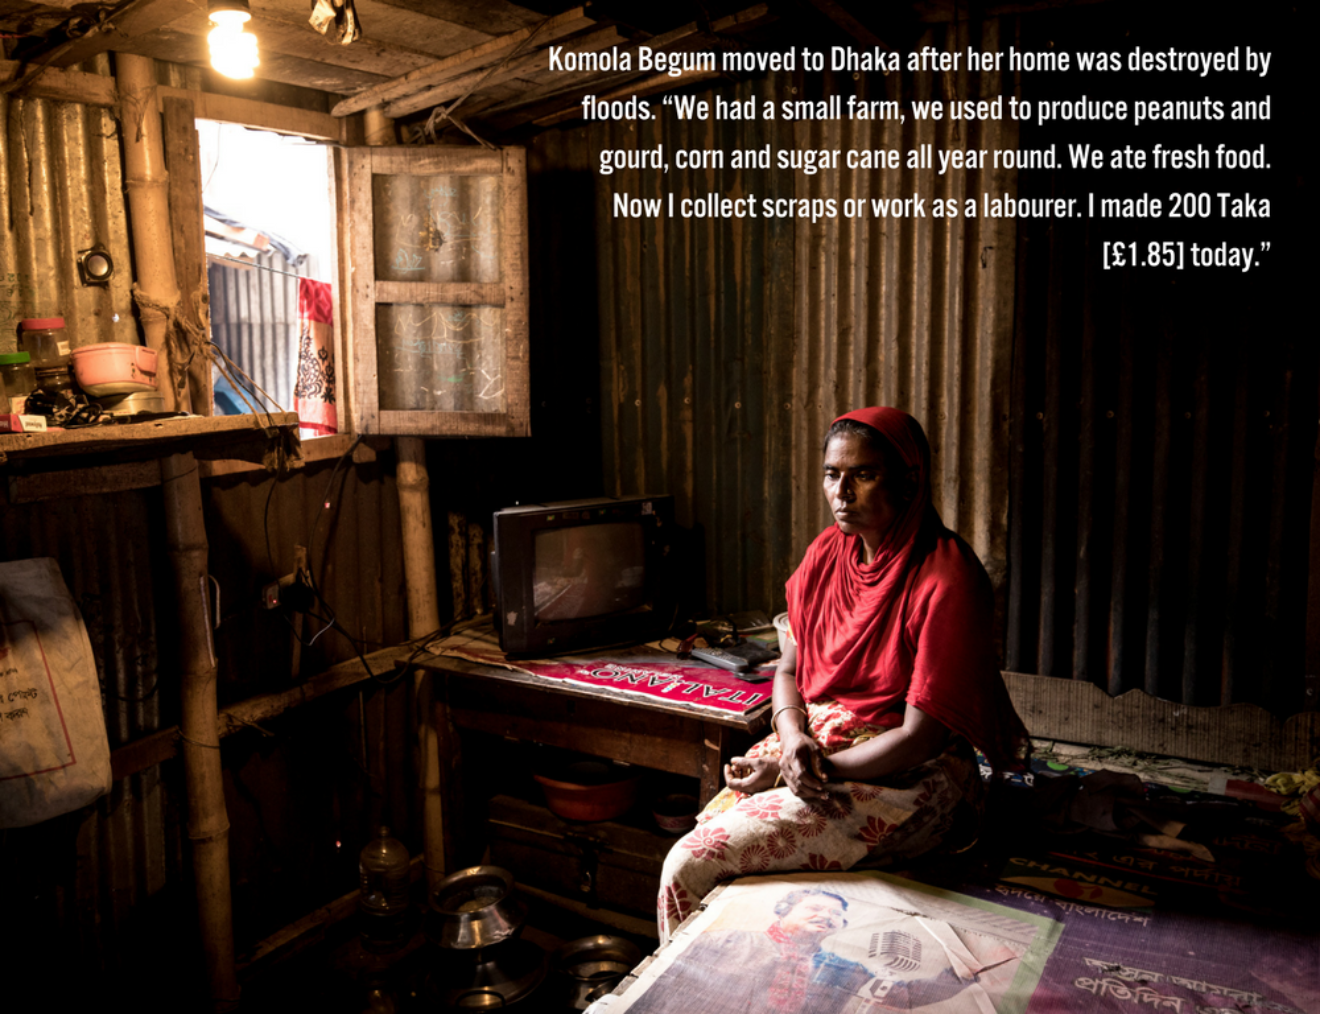 """Komola Begum Moved To Dhaka After Her Home Was Destroyed By Floods """" I Jumped In To The Water To Try And Save The Cattle But I Could Not 80 Or 90 Houses Were Destroyed  When I Was Young The Summer Was Not So Hot  N"""